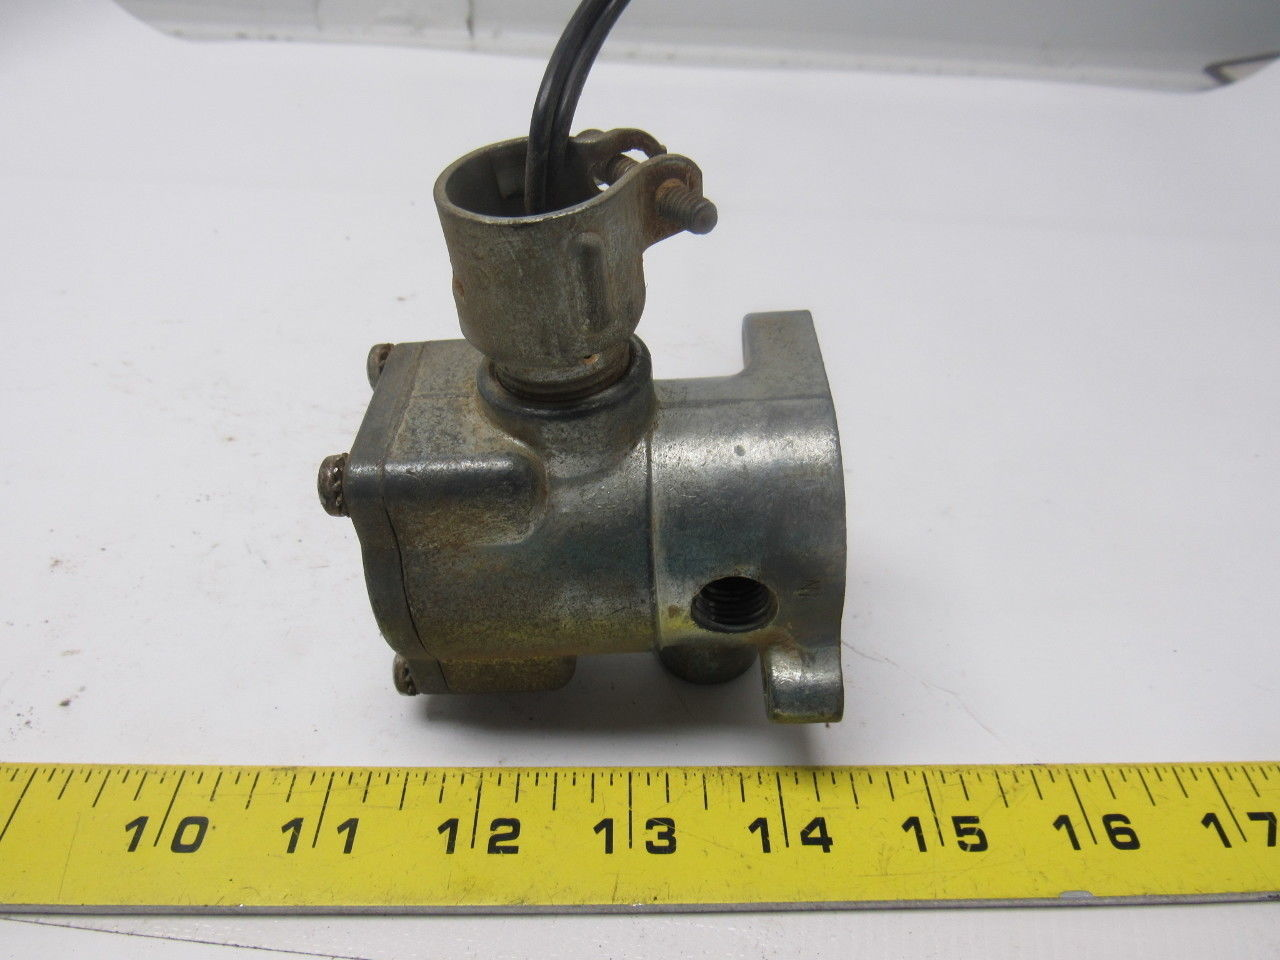 "Schrader Bellows - K055 1037 Pilot valve line mount 115V 2-way NC 1/8"" ports"